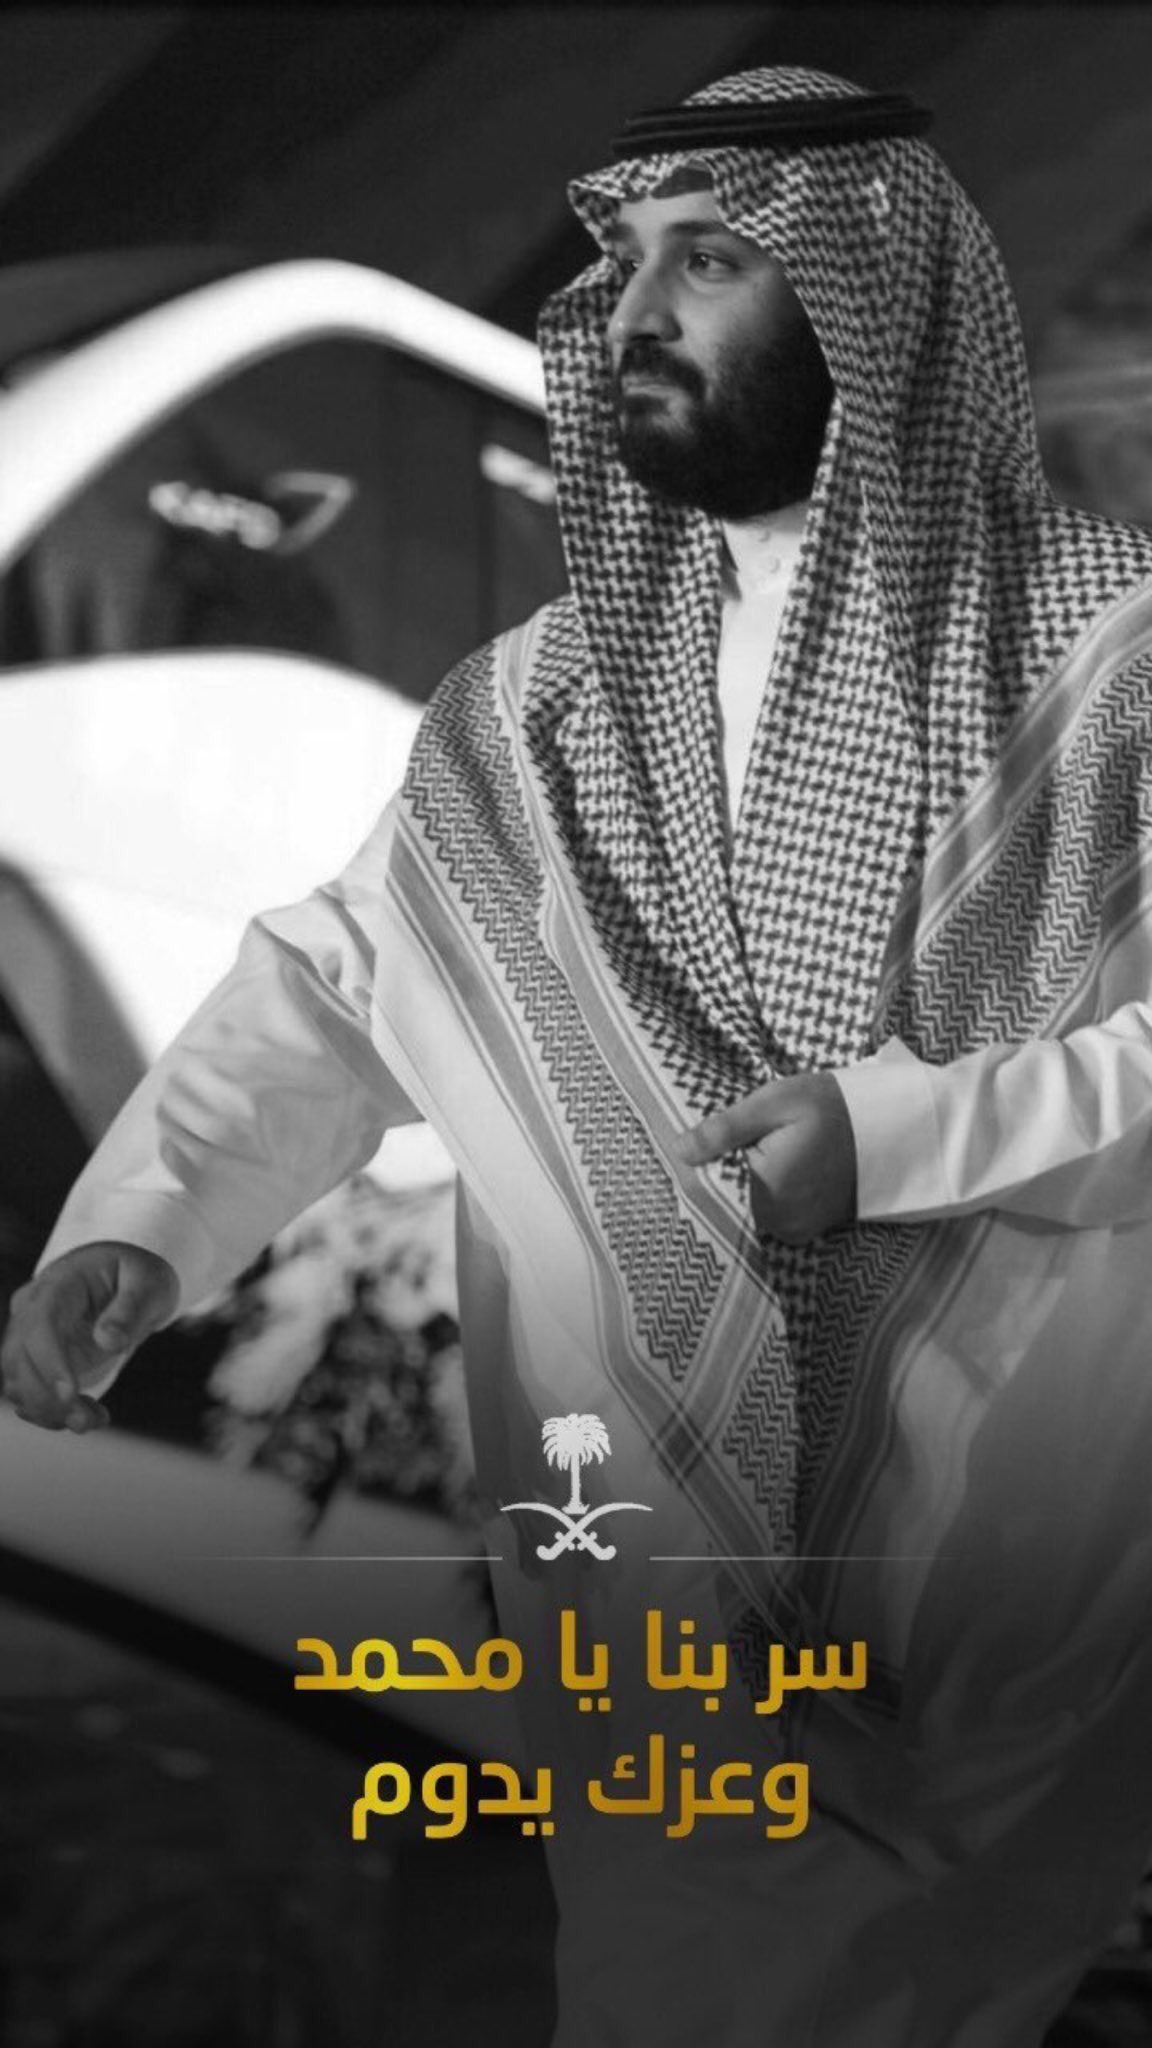 Pin By Faisal Alshahrani On محمد بن سلمان National Day Saudi Prince Mohammed Portrait